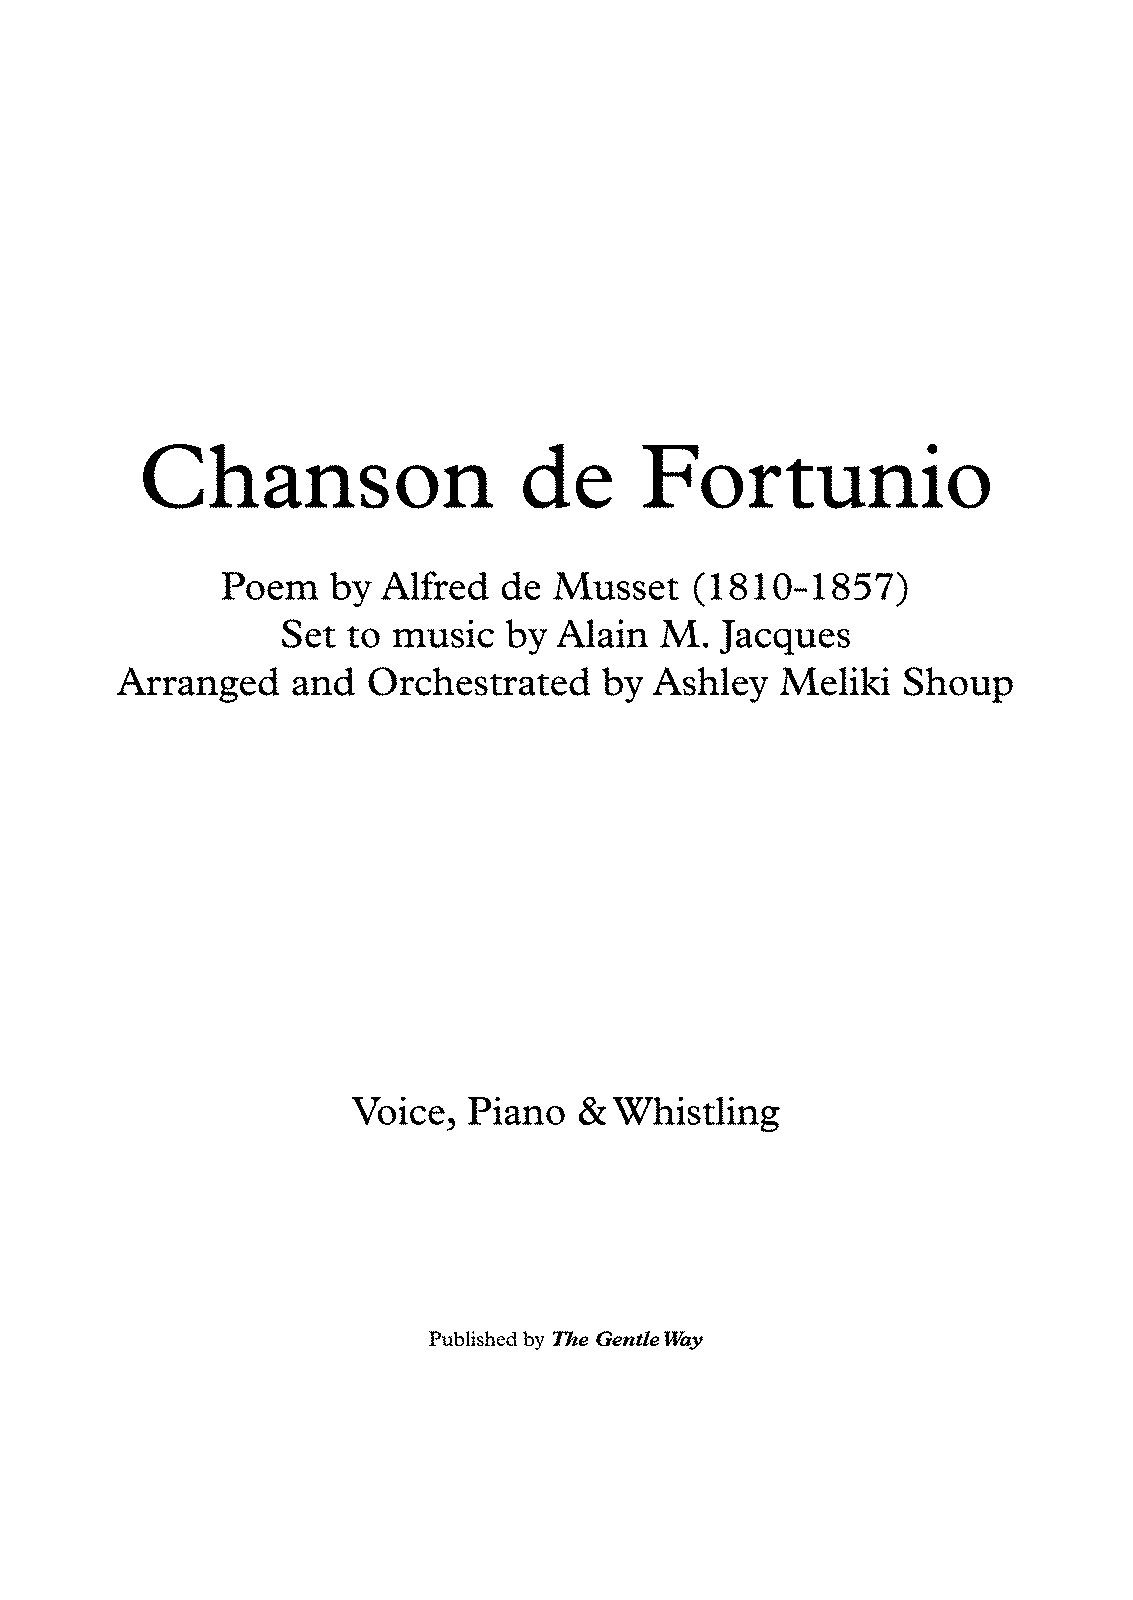 PMLP449264-Chanson de Fortunio (A. Jacques - A. de Musset) piano and whisttle - Full Score.pdf